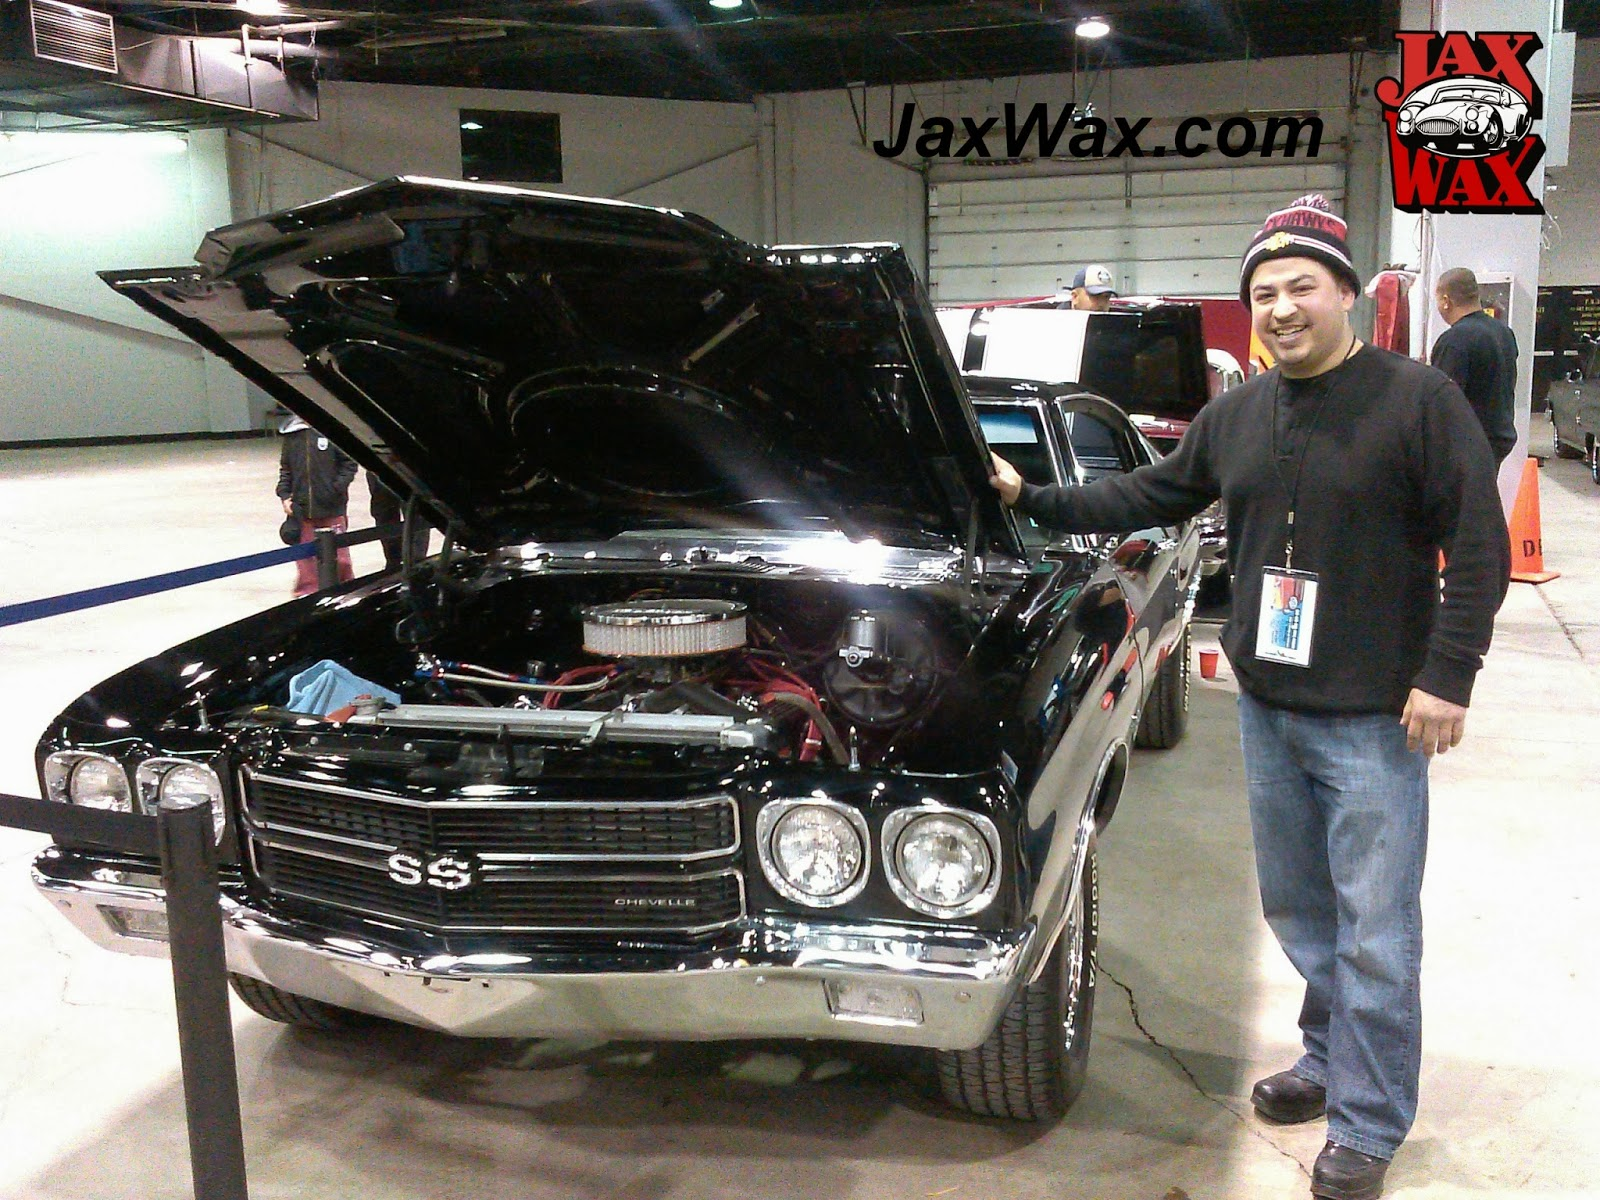 1970 Chevy Chevelle SSJax Wax Customer Chicago World of Wheels